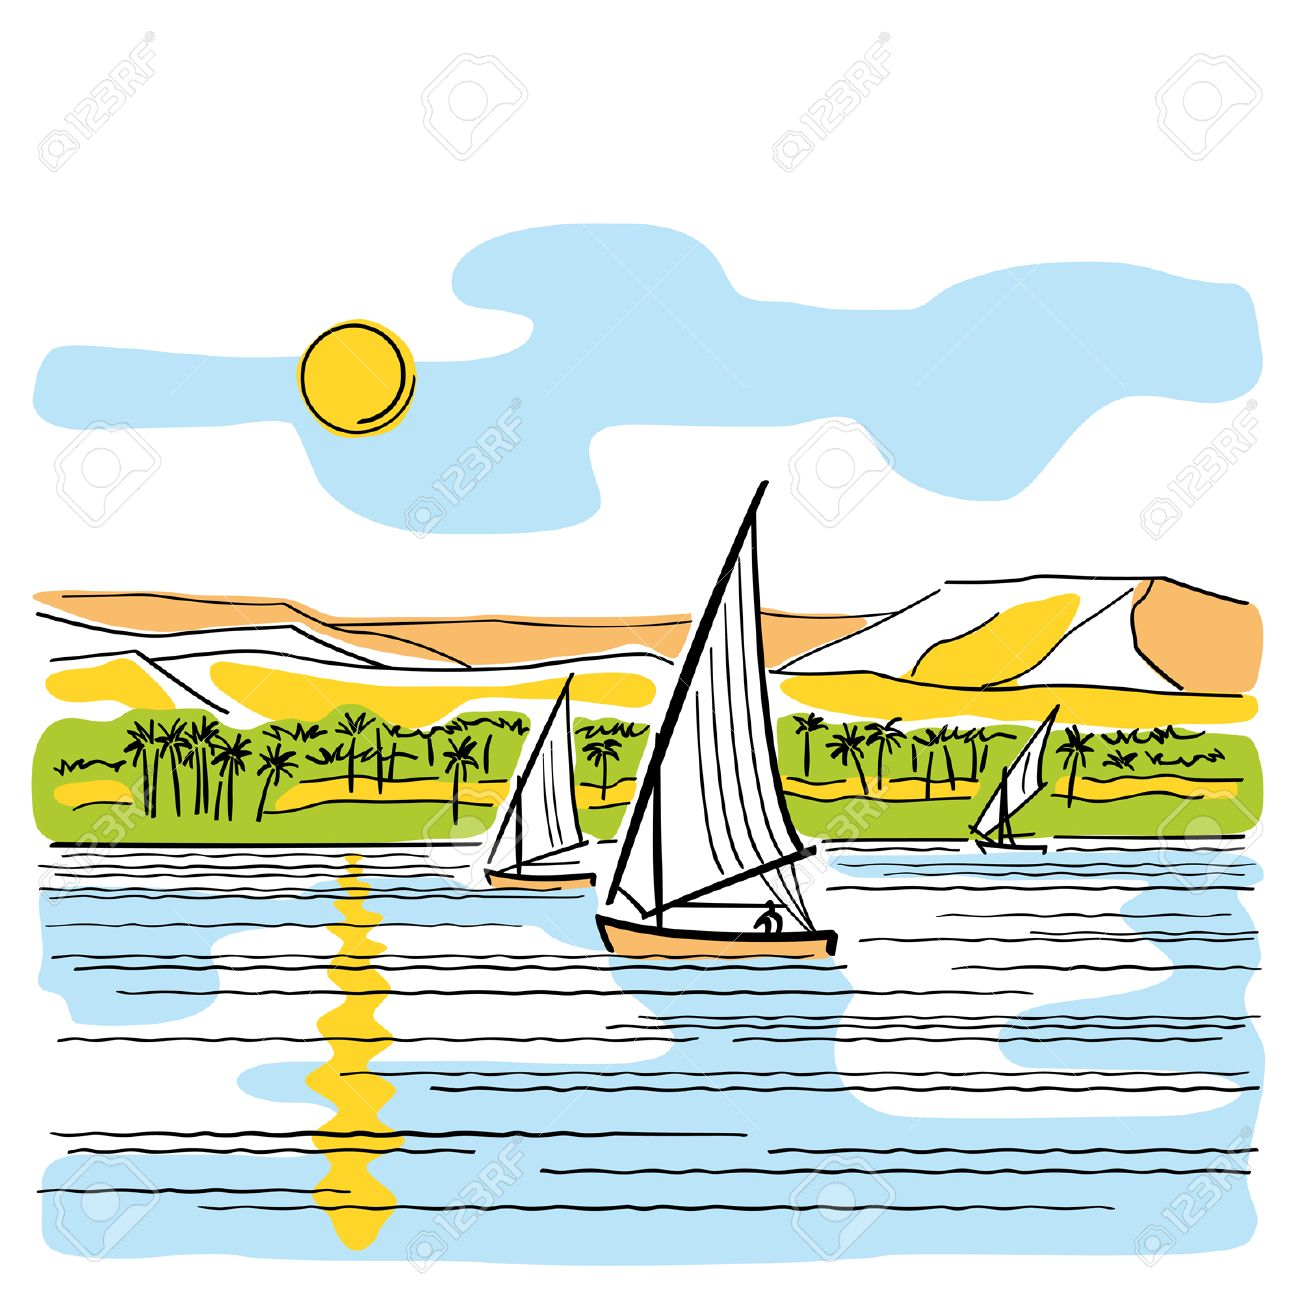 Egypt clipart nile river. Collection of free download